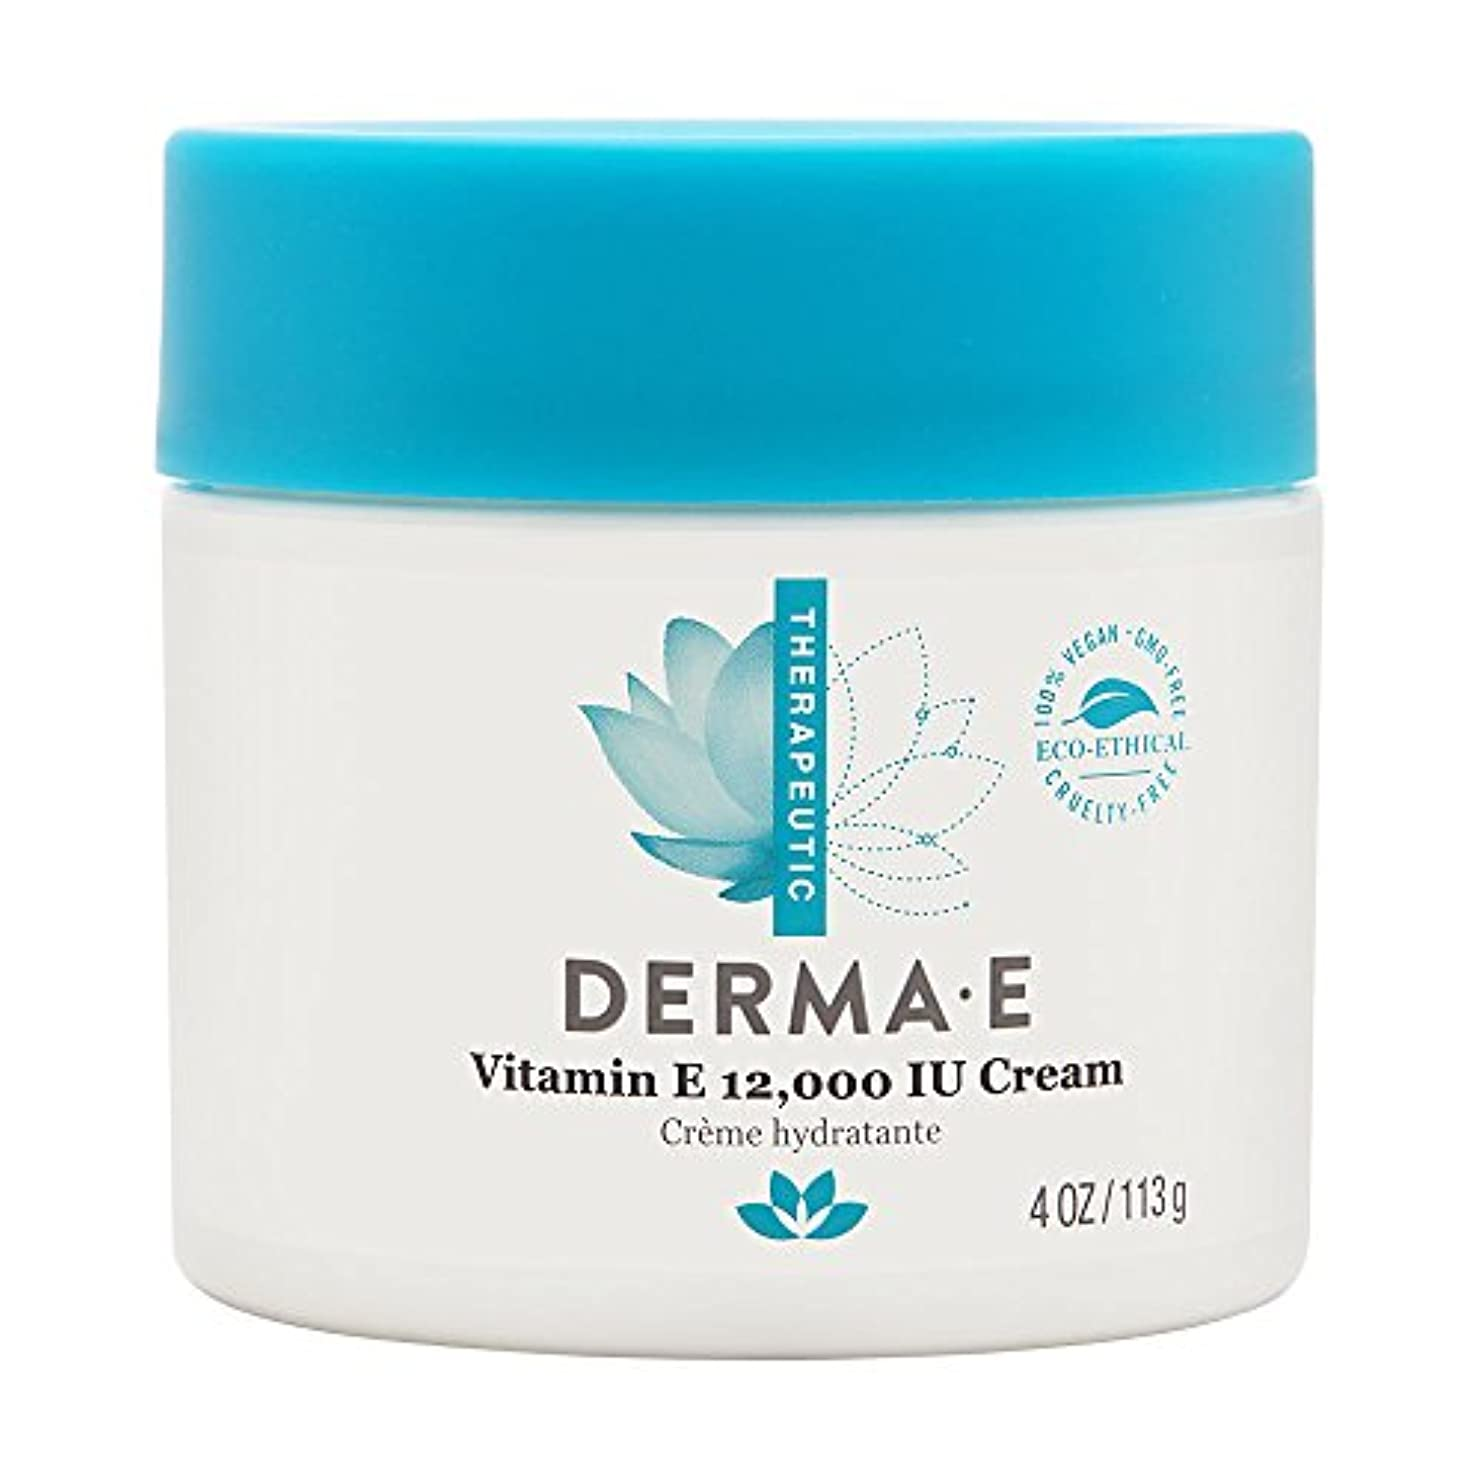 Derma E Therapeutic Vitamin E 12,000 IU Cream 113g/4oz並行輸入品